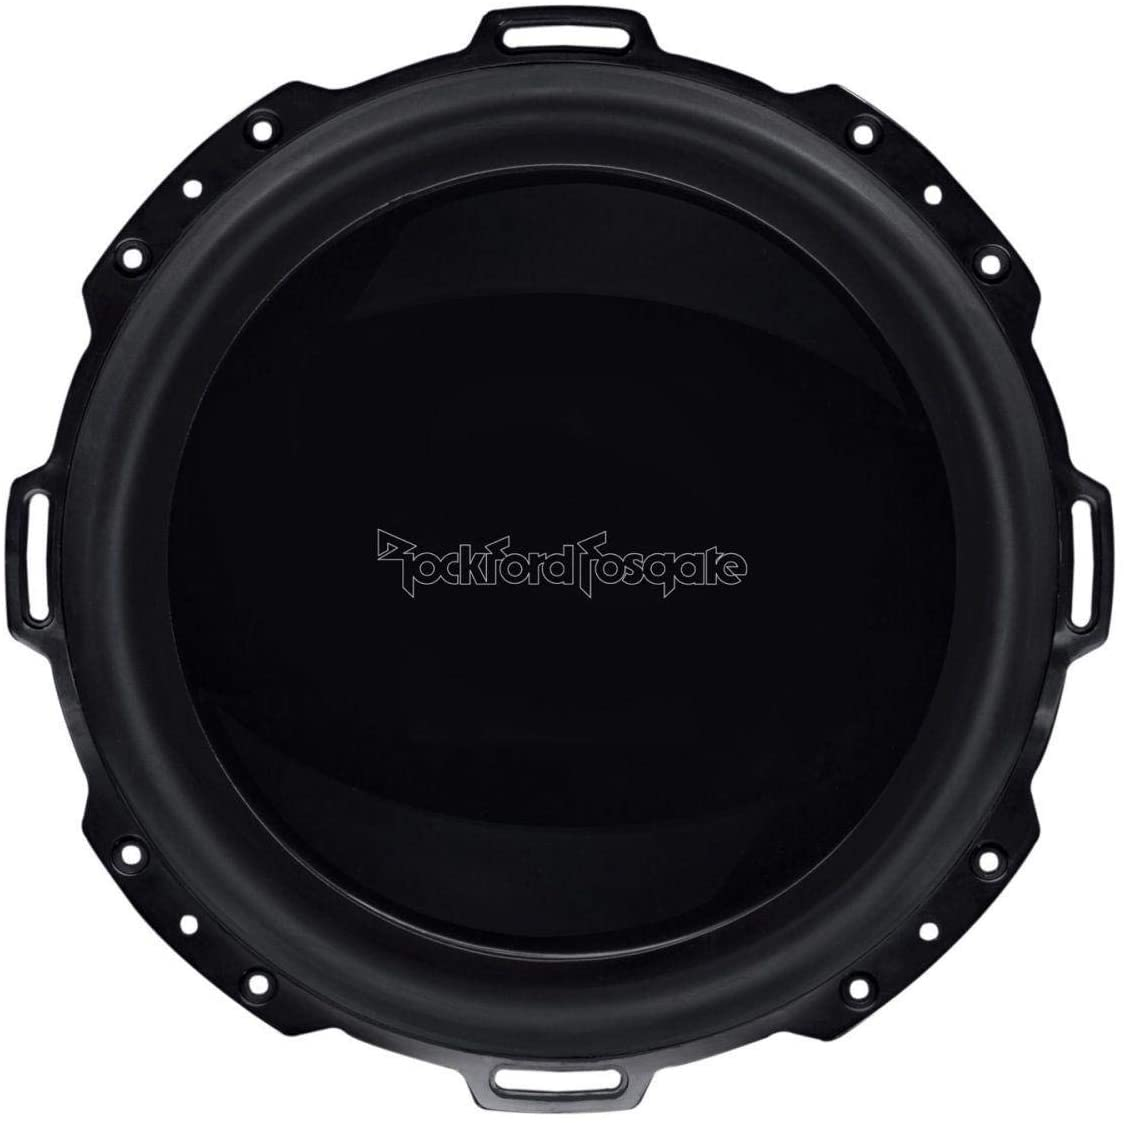 Rockford Fosgate Marine Subwoofer without metal grille